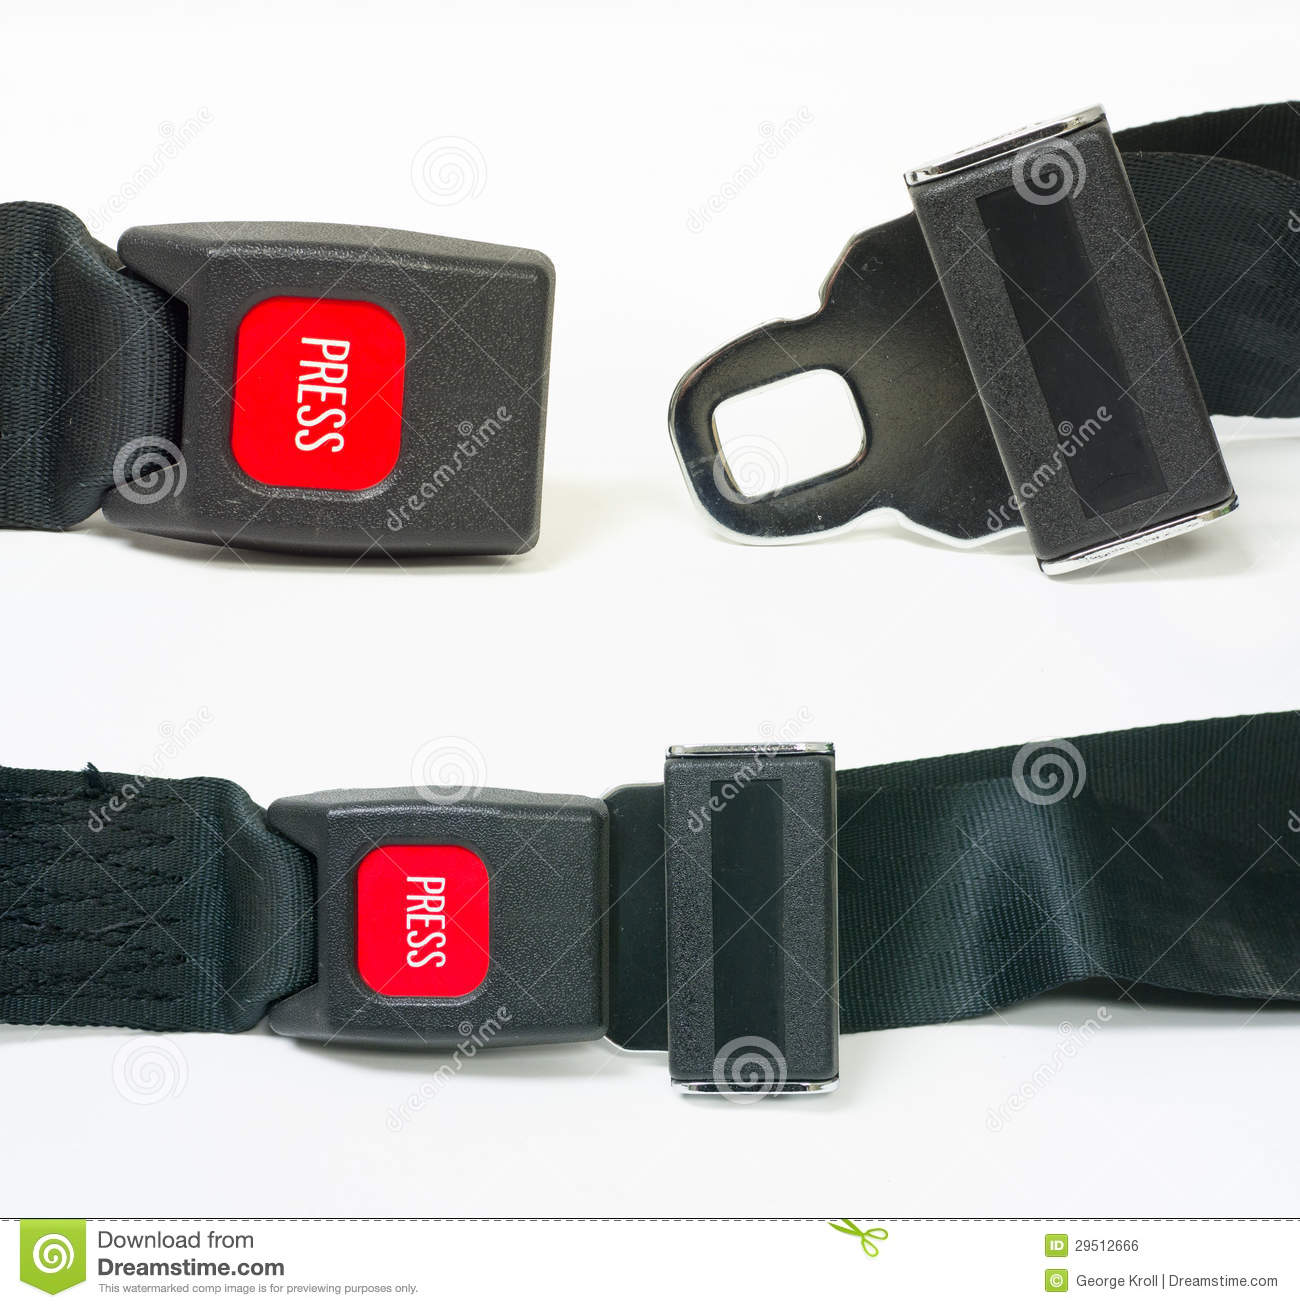 Fastening Seat Belts: The 3 Seconds That Save Lives